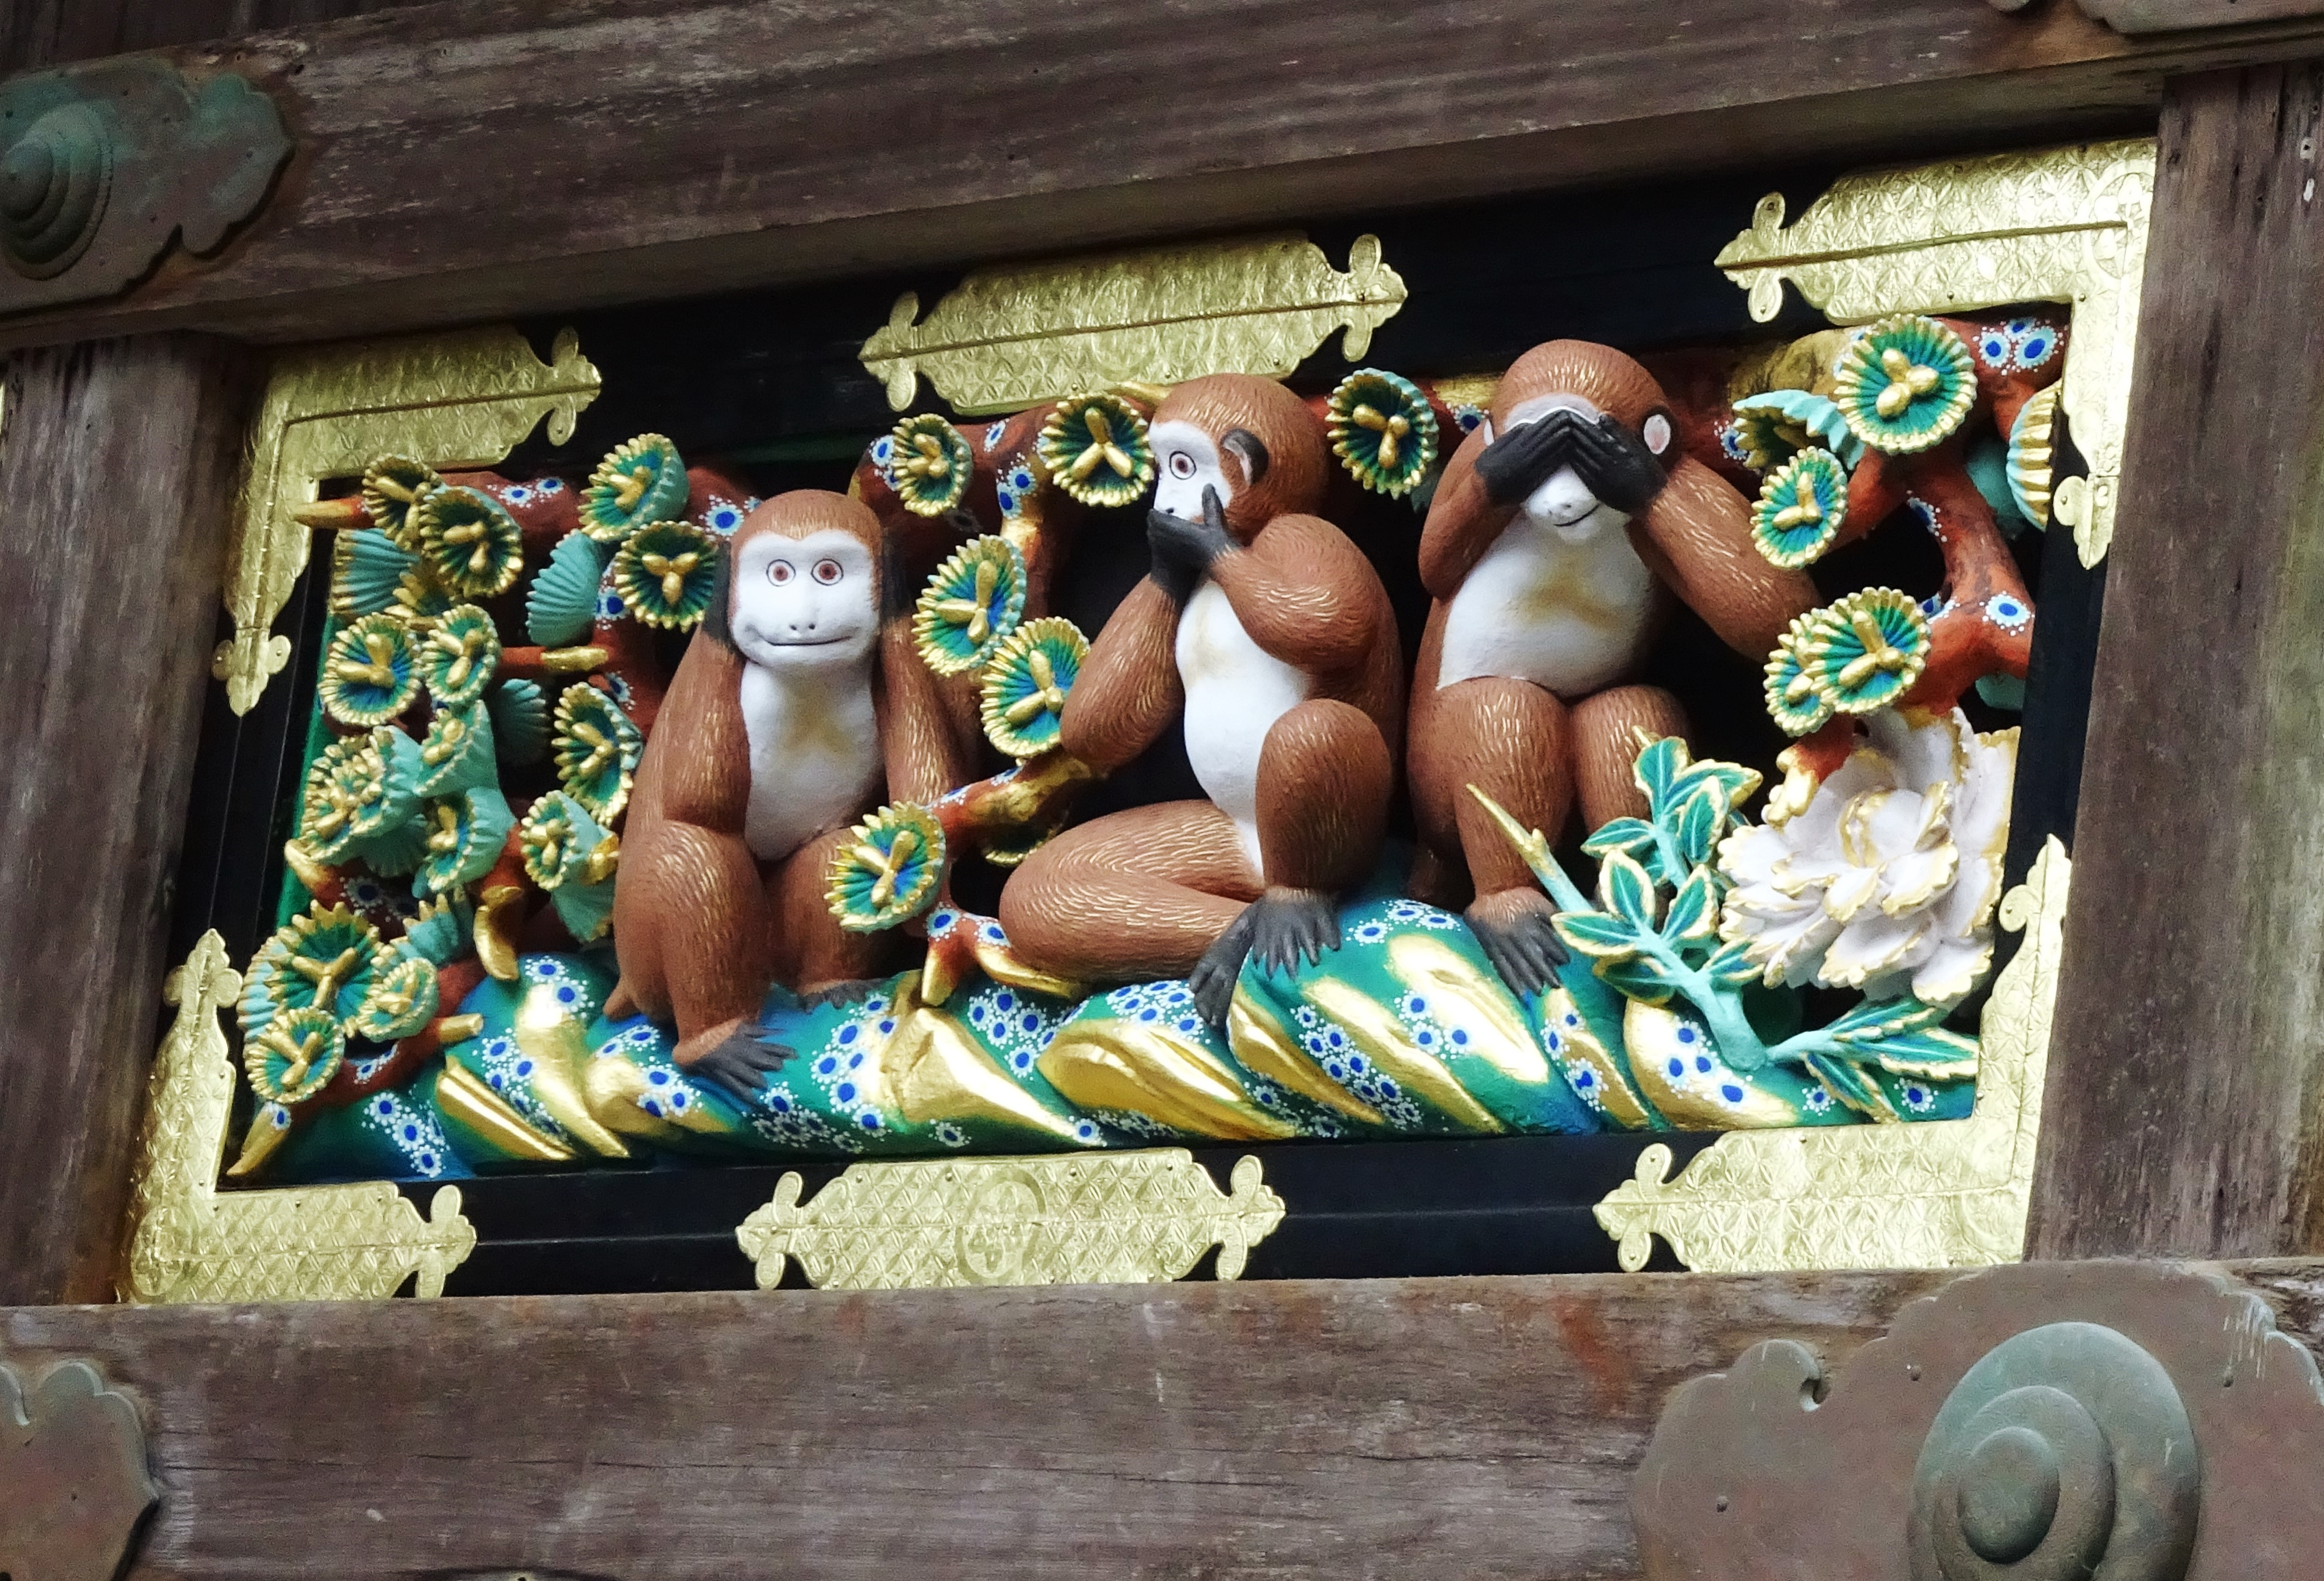 The Three Wise Monkeys 'Hear no evil, say no evil, see no evil', at Tosho-gu temple in Nikko